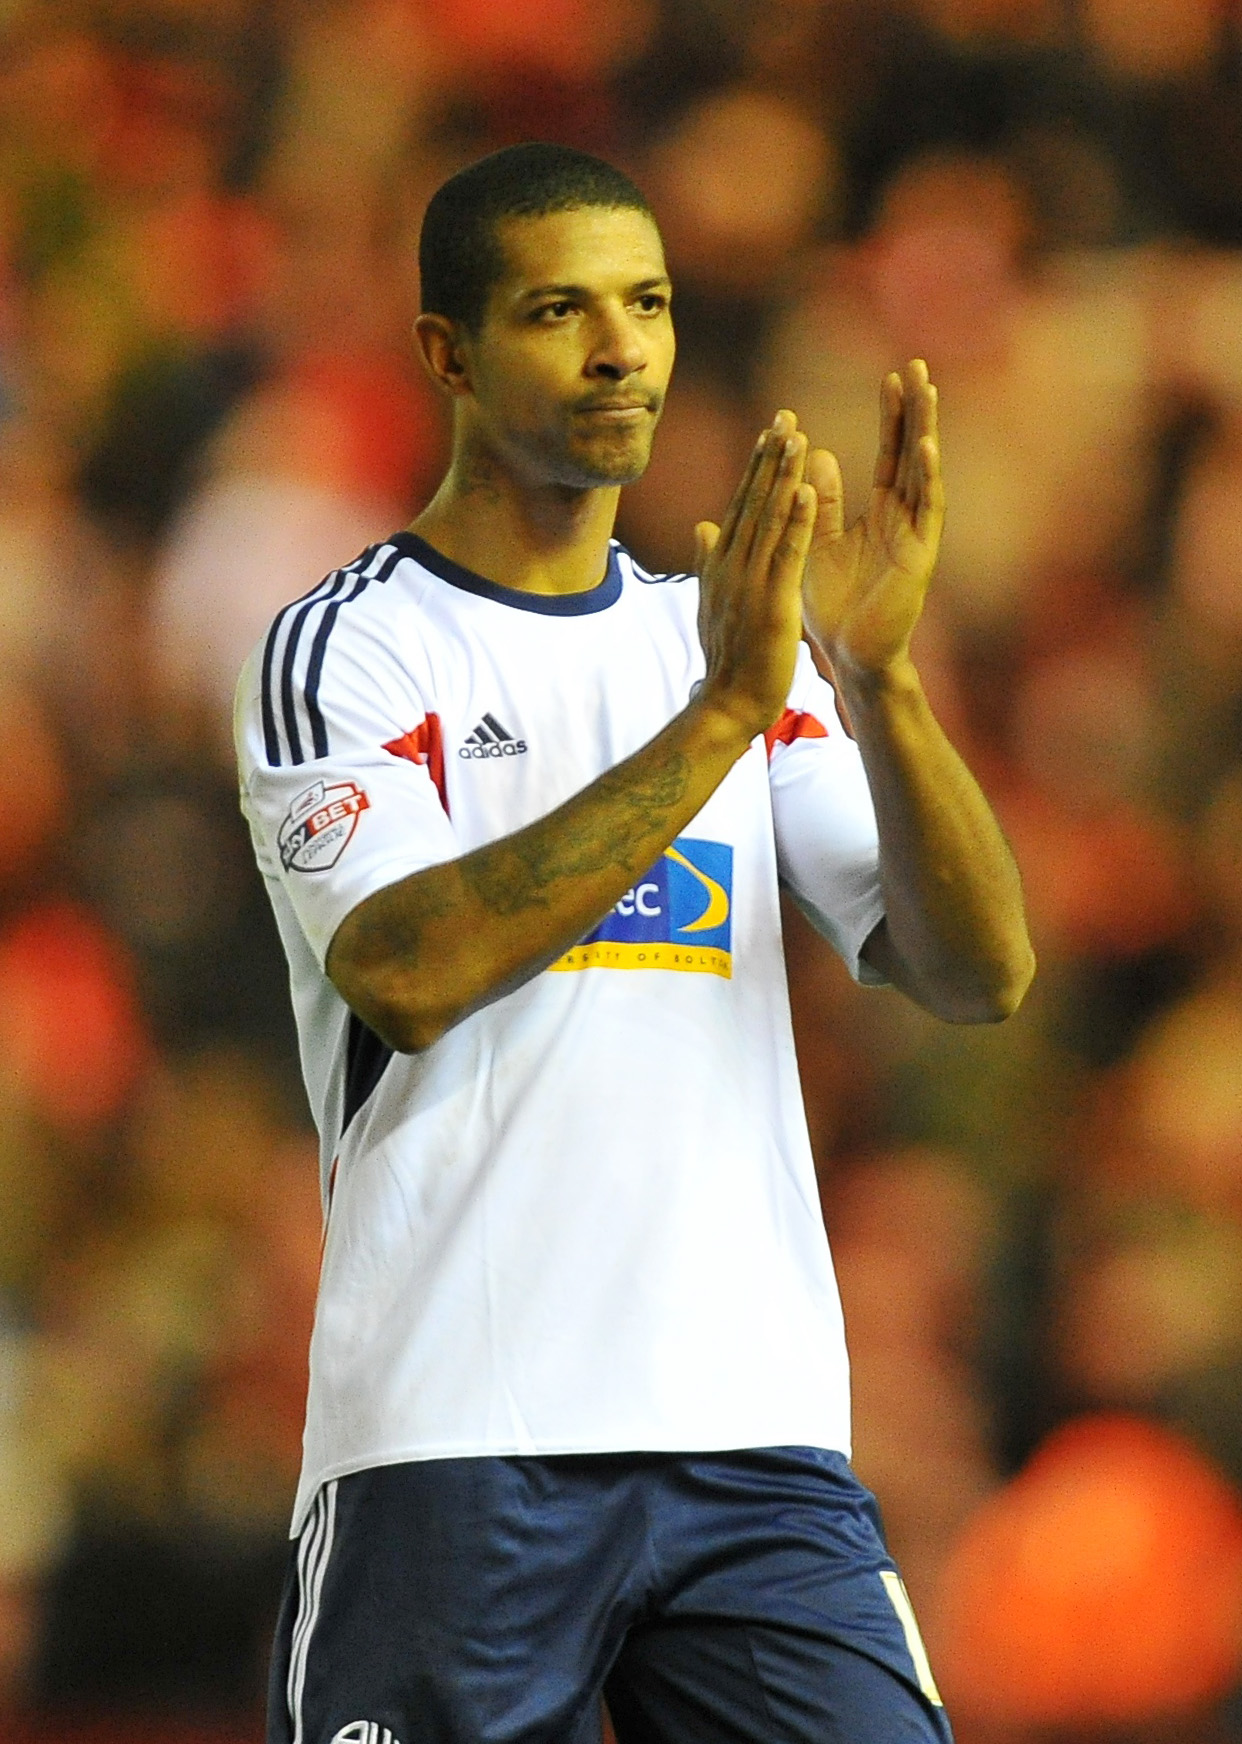 Beckford: Ear infection nearly forced me to retire